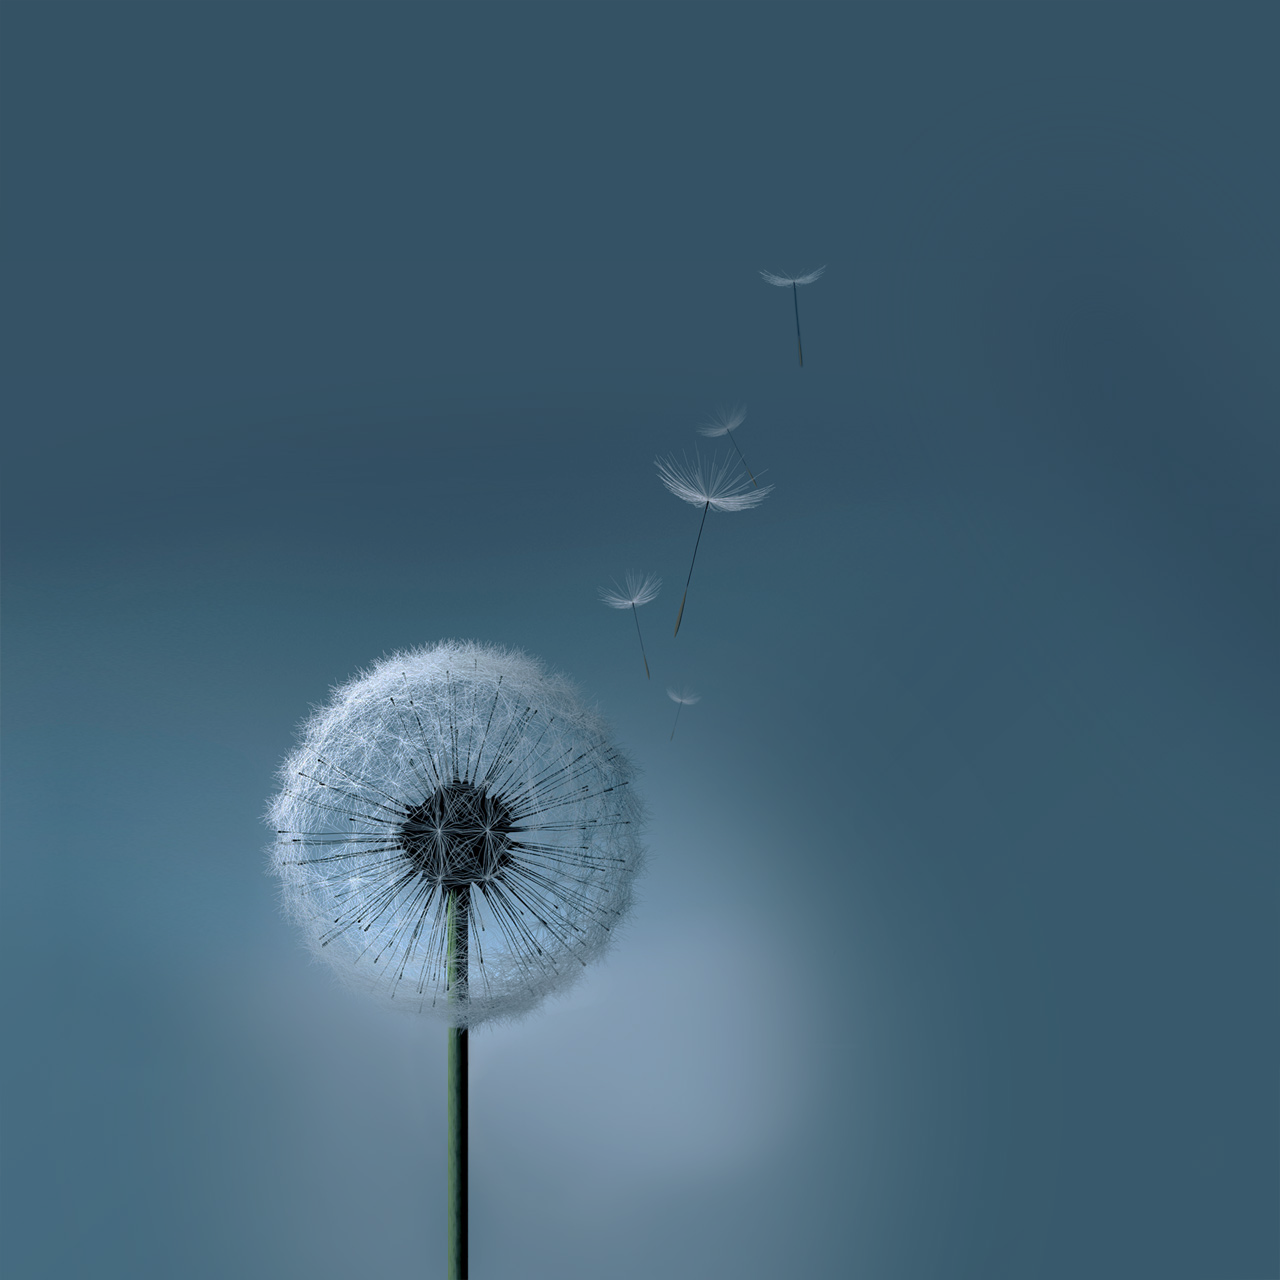 Samsung Galaxy SIII S3 Dandelion Wallpaper by kingwicked 1280x1280